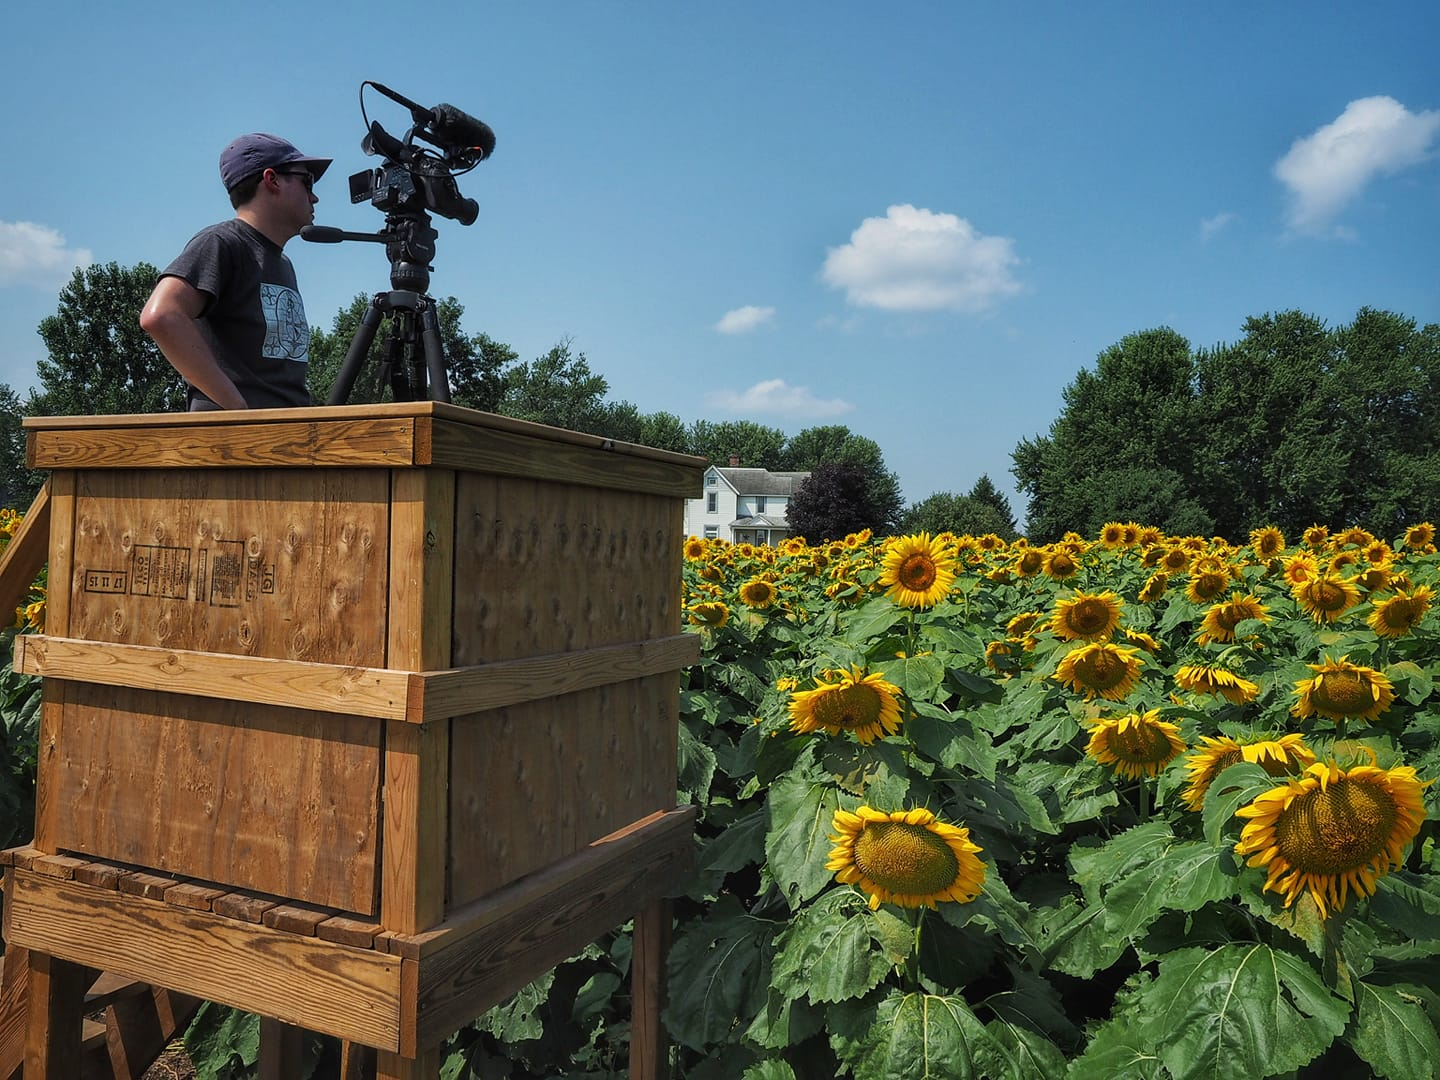 Ryan Ward films a Wisconsin Life story from an observation tower in the middle of a rural sunflower field